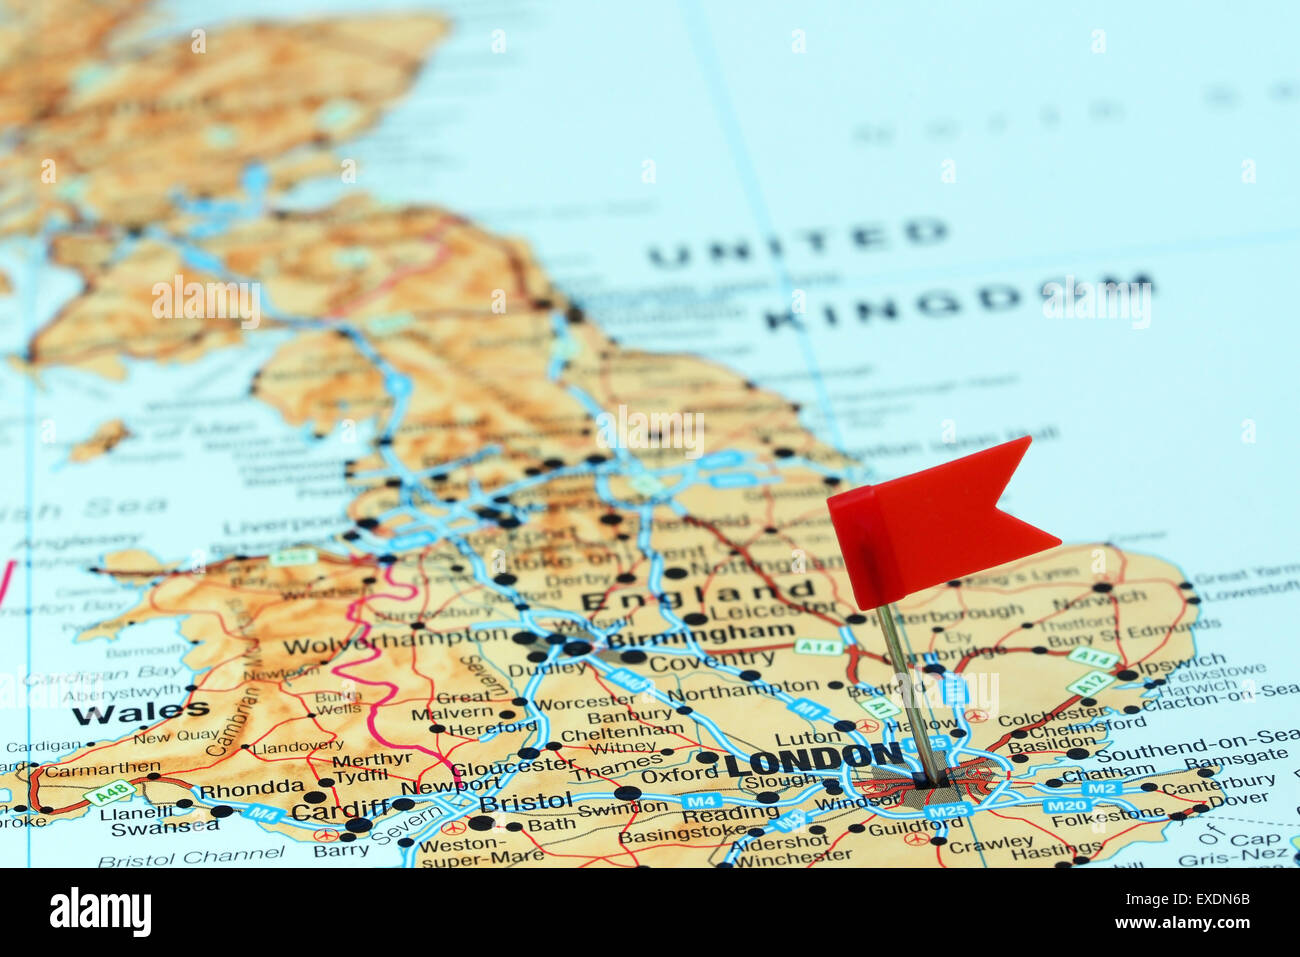 London Pinned On A Map Of Europe Stock Photo Royalty Free Image - London map in europe